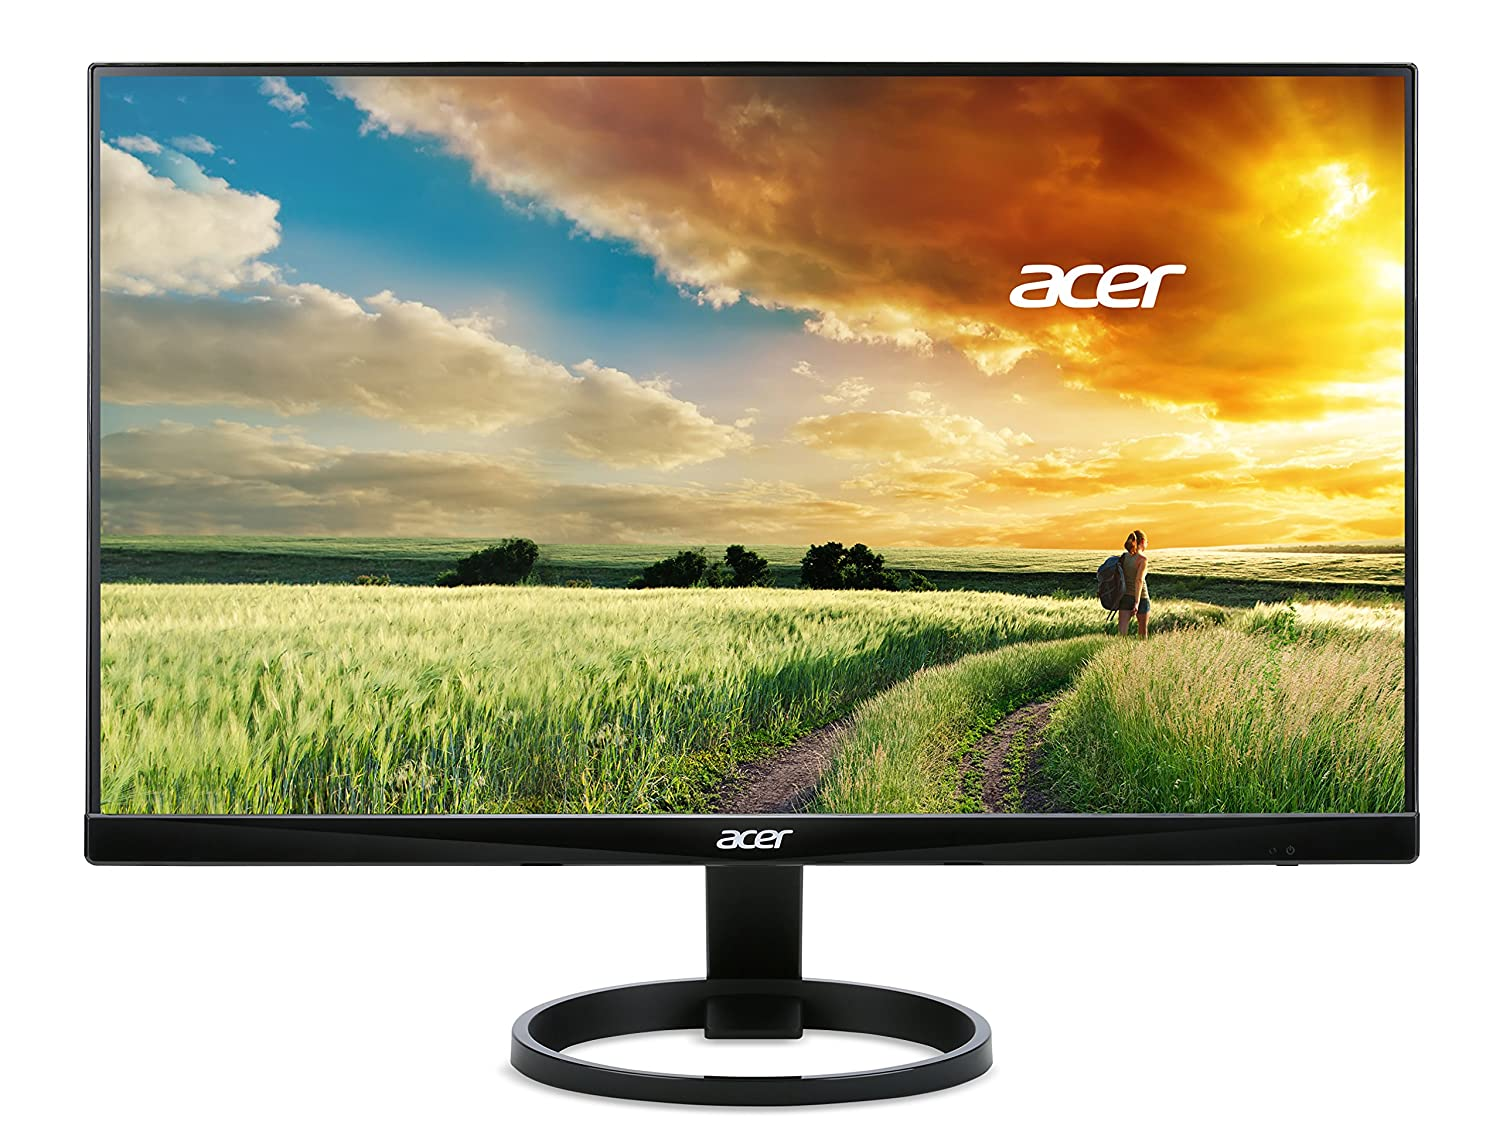 Acer R240HY bidx 23.8-Inch IPS Full HD (1920 x 1080) Widescreen Display